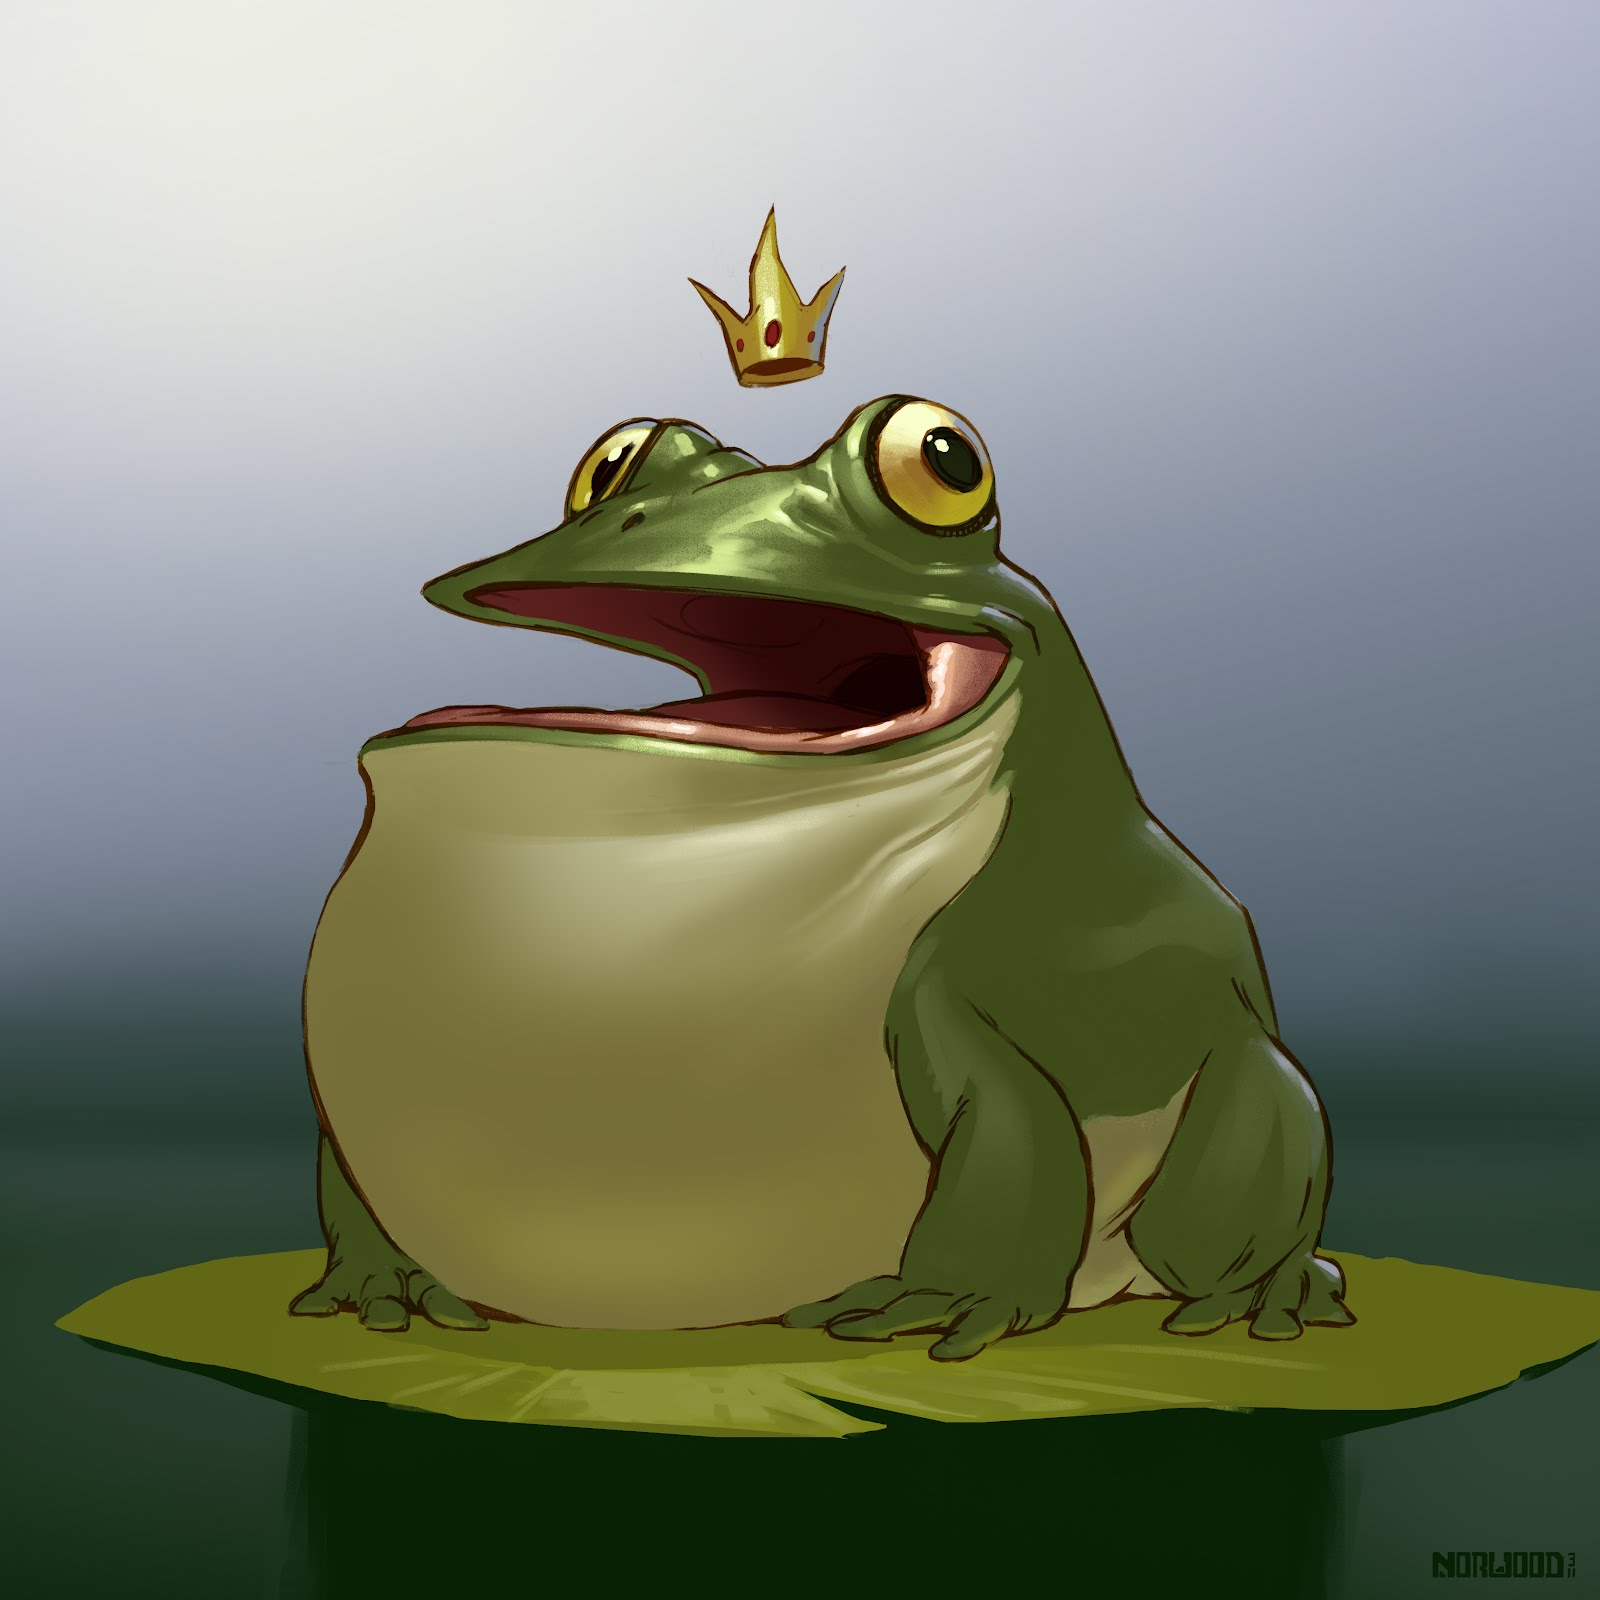 Chubby frog picture